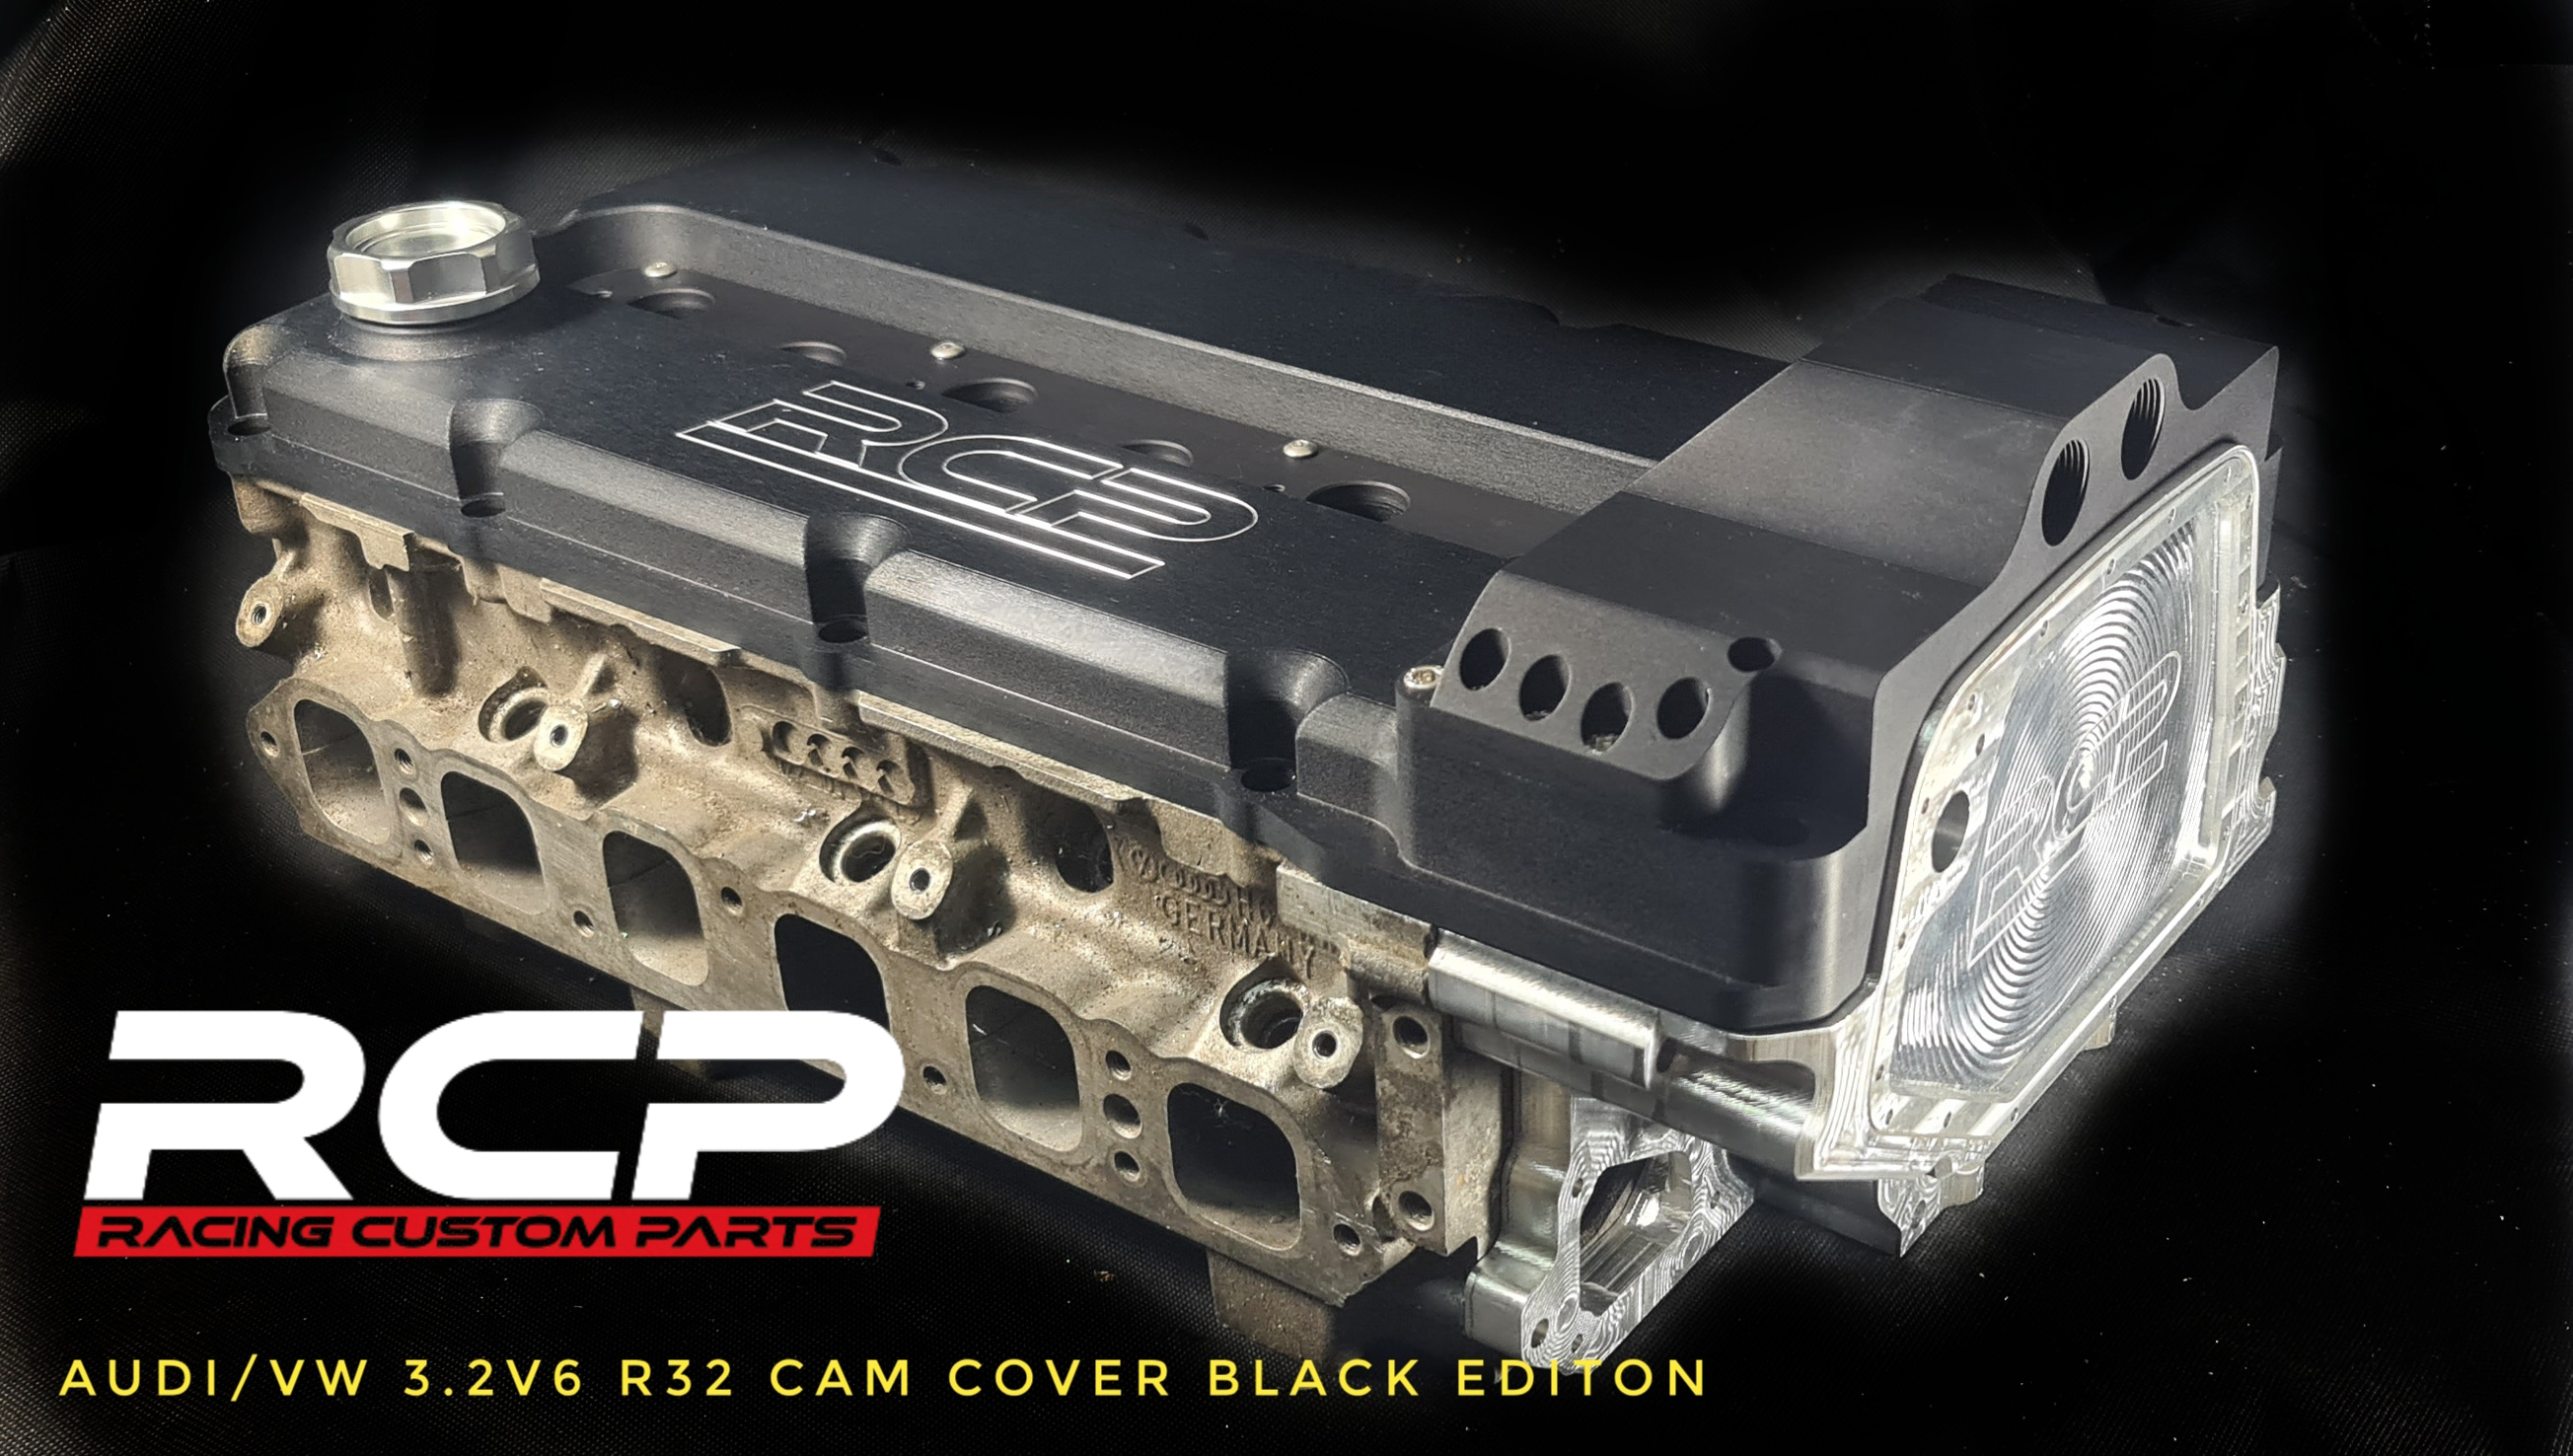 r32 vr6 r36 camcover headcover head cover cam cover cover r32 turbo r30 turbo audi turbo vw turbo vr6 rules rcp racing custom parts billet cnc billet cam cover